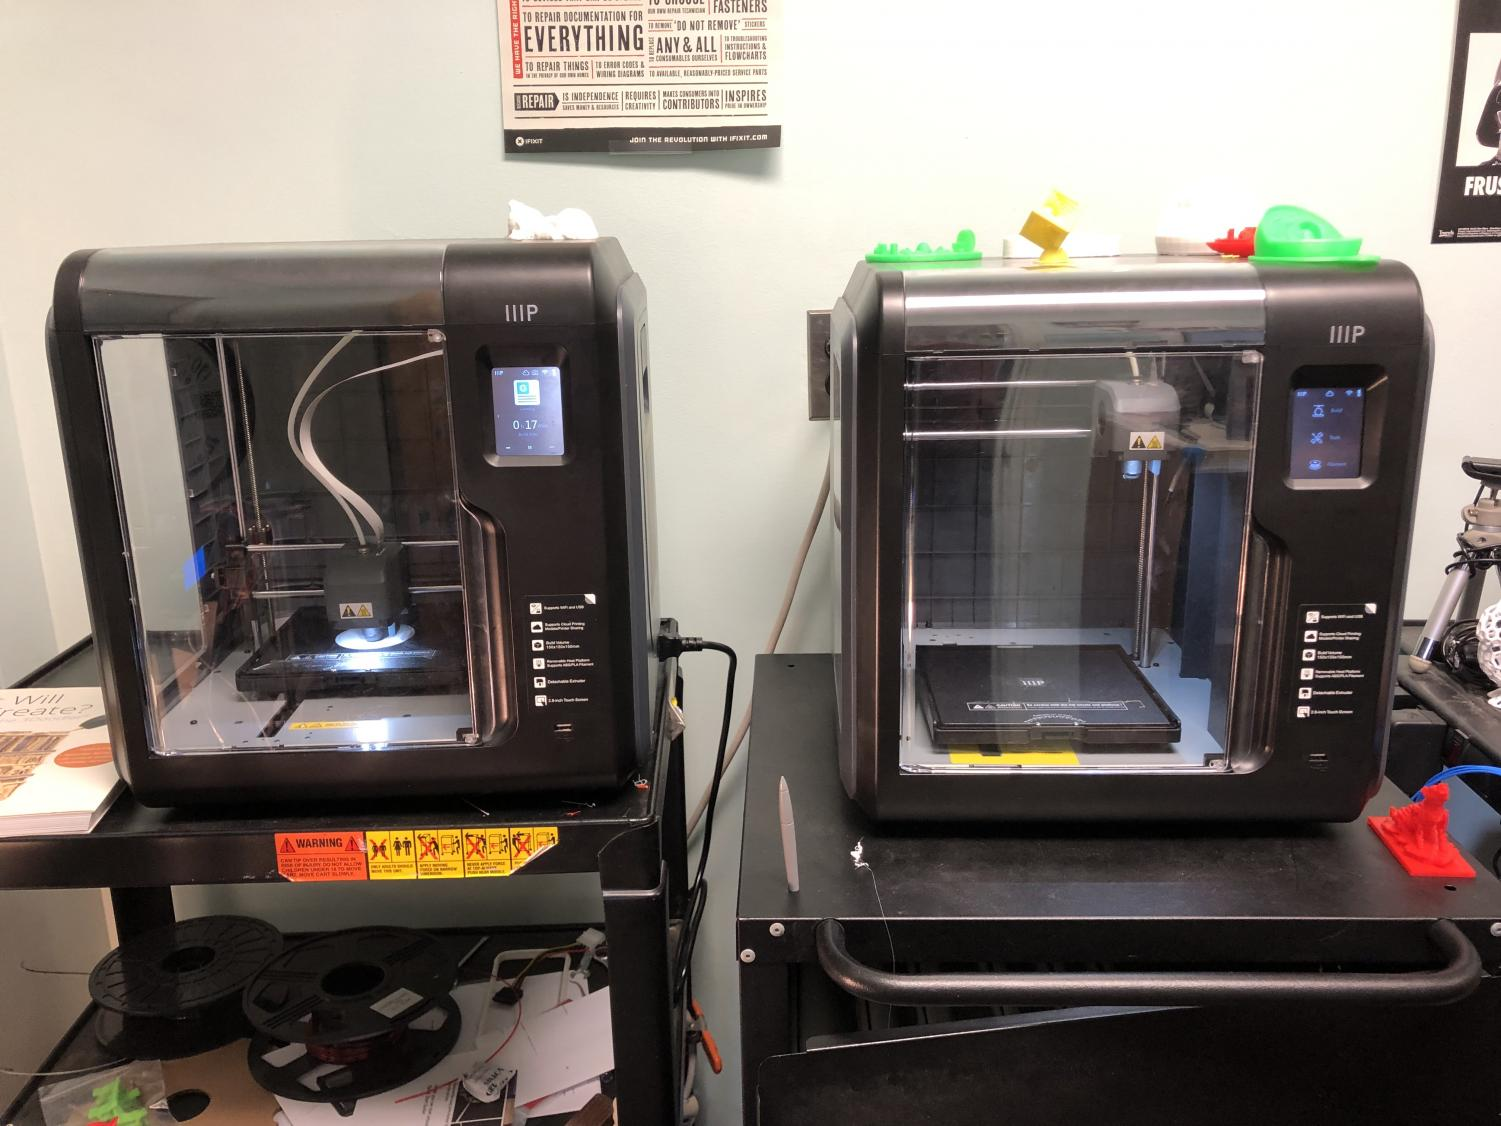 The two Monoprice MP Voxel printers in the IT Department. The left printer is in the process of printing an item. Photo courtesy of Mohammad Abbasi.